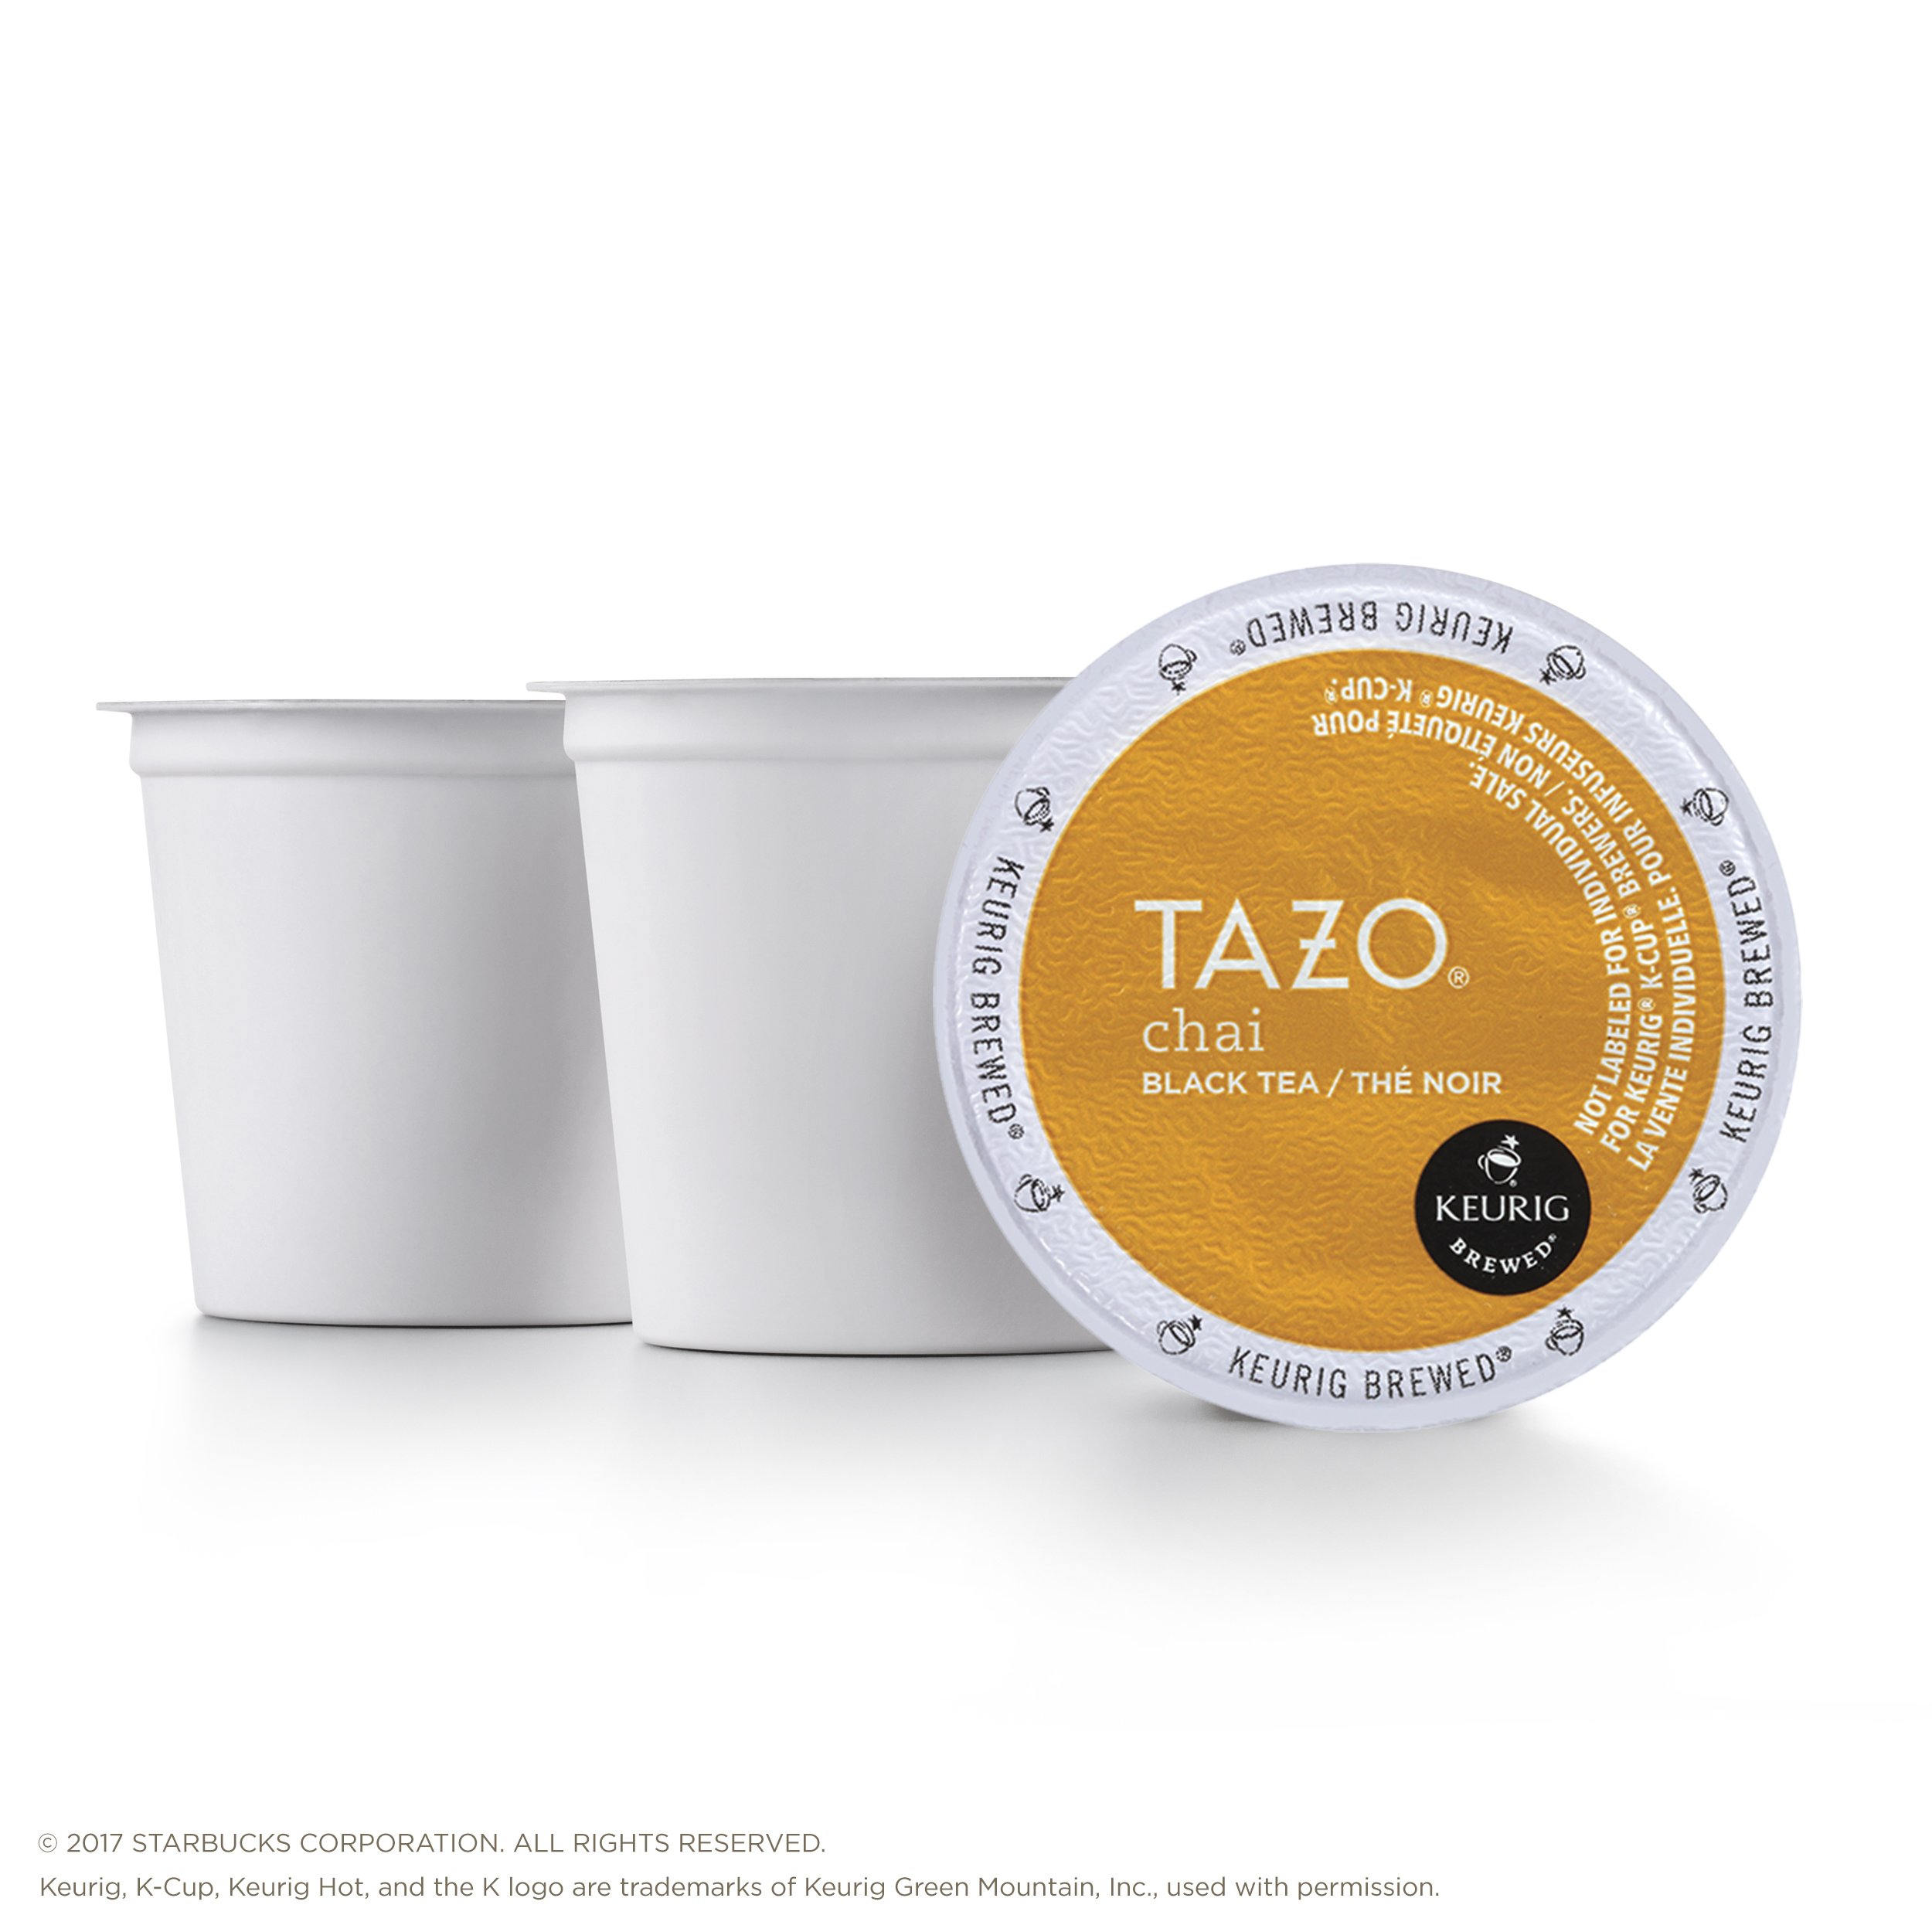 Tazo Chai Black Tea K-Cup, 10 ct (Pack of 6) by TAZO (Image #4)